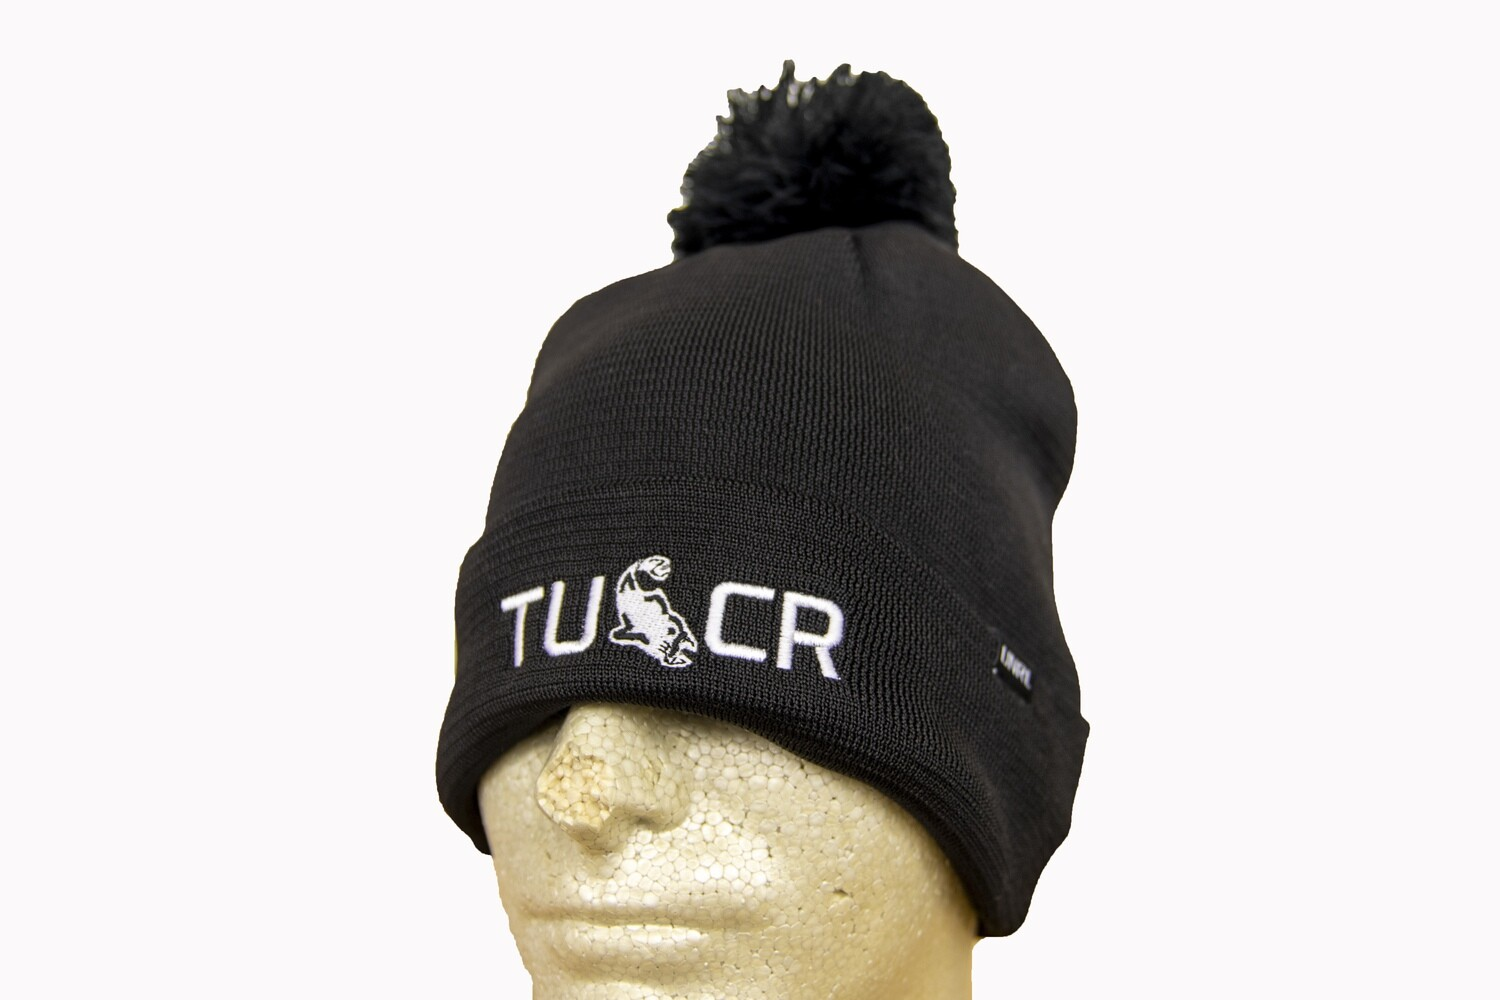 TUCR ELITE WINTER KNIT BLACK HAT BLACK